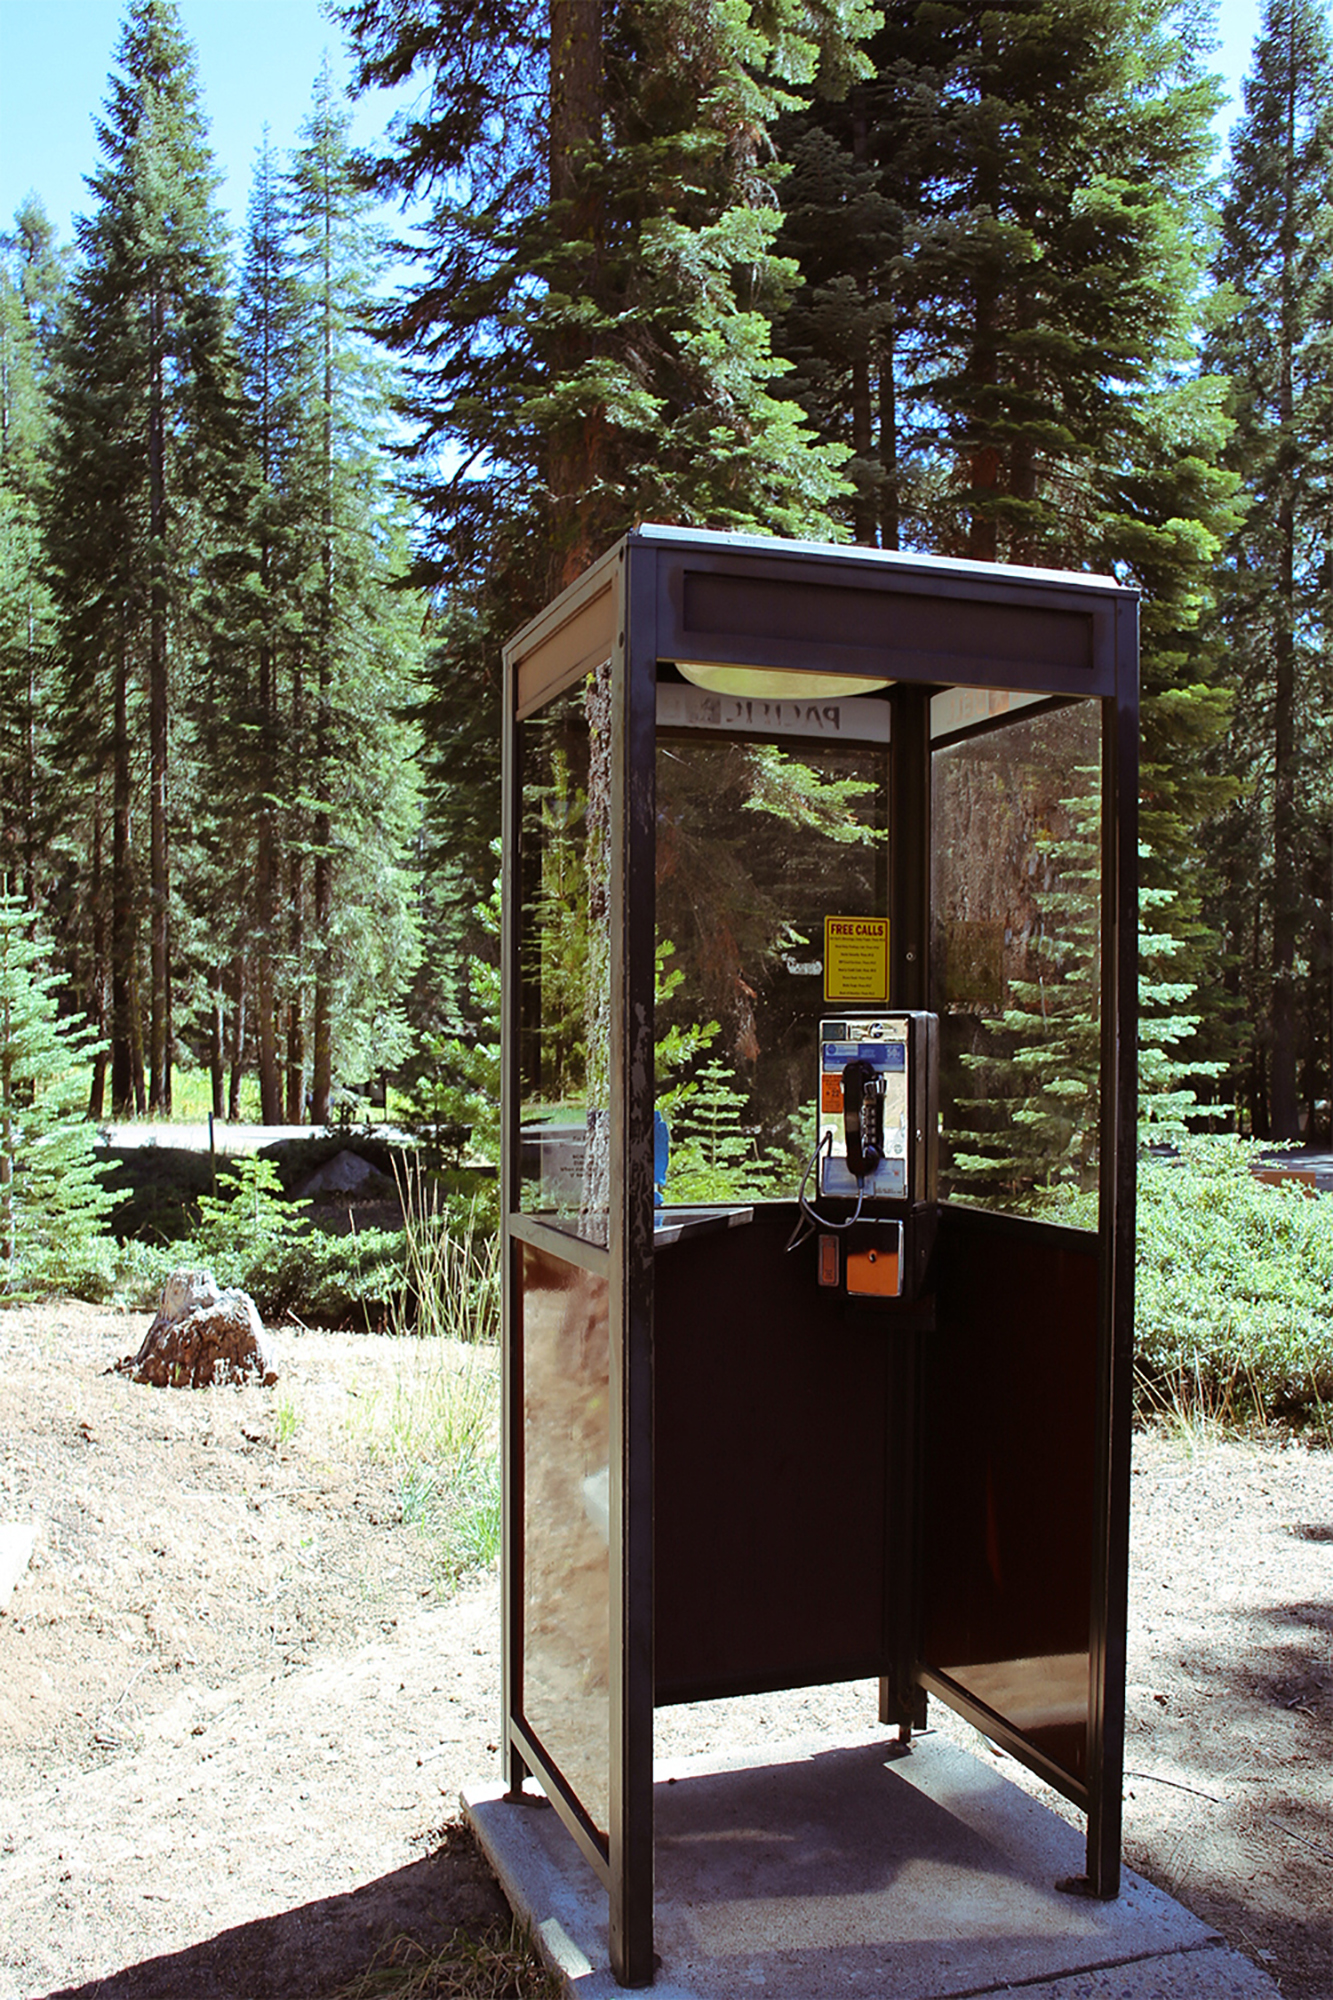 Telephone Stand in the Woods